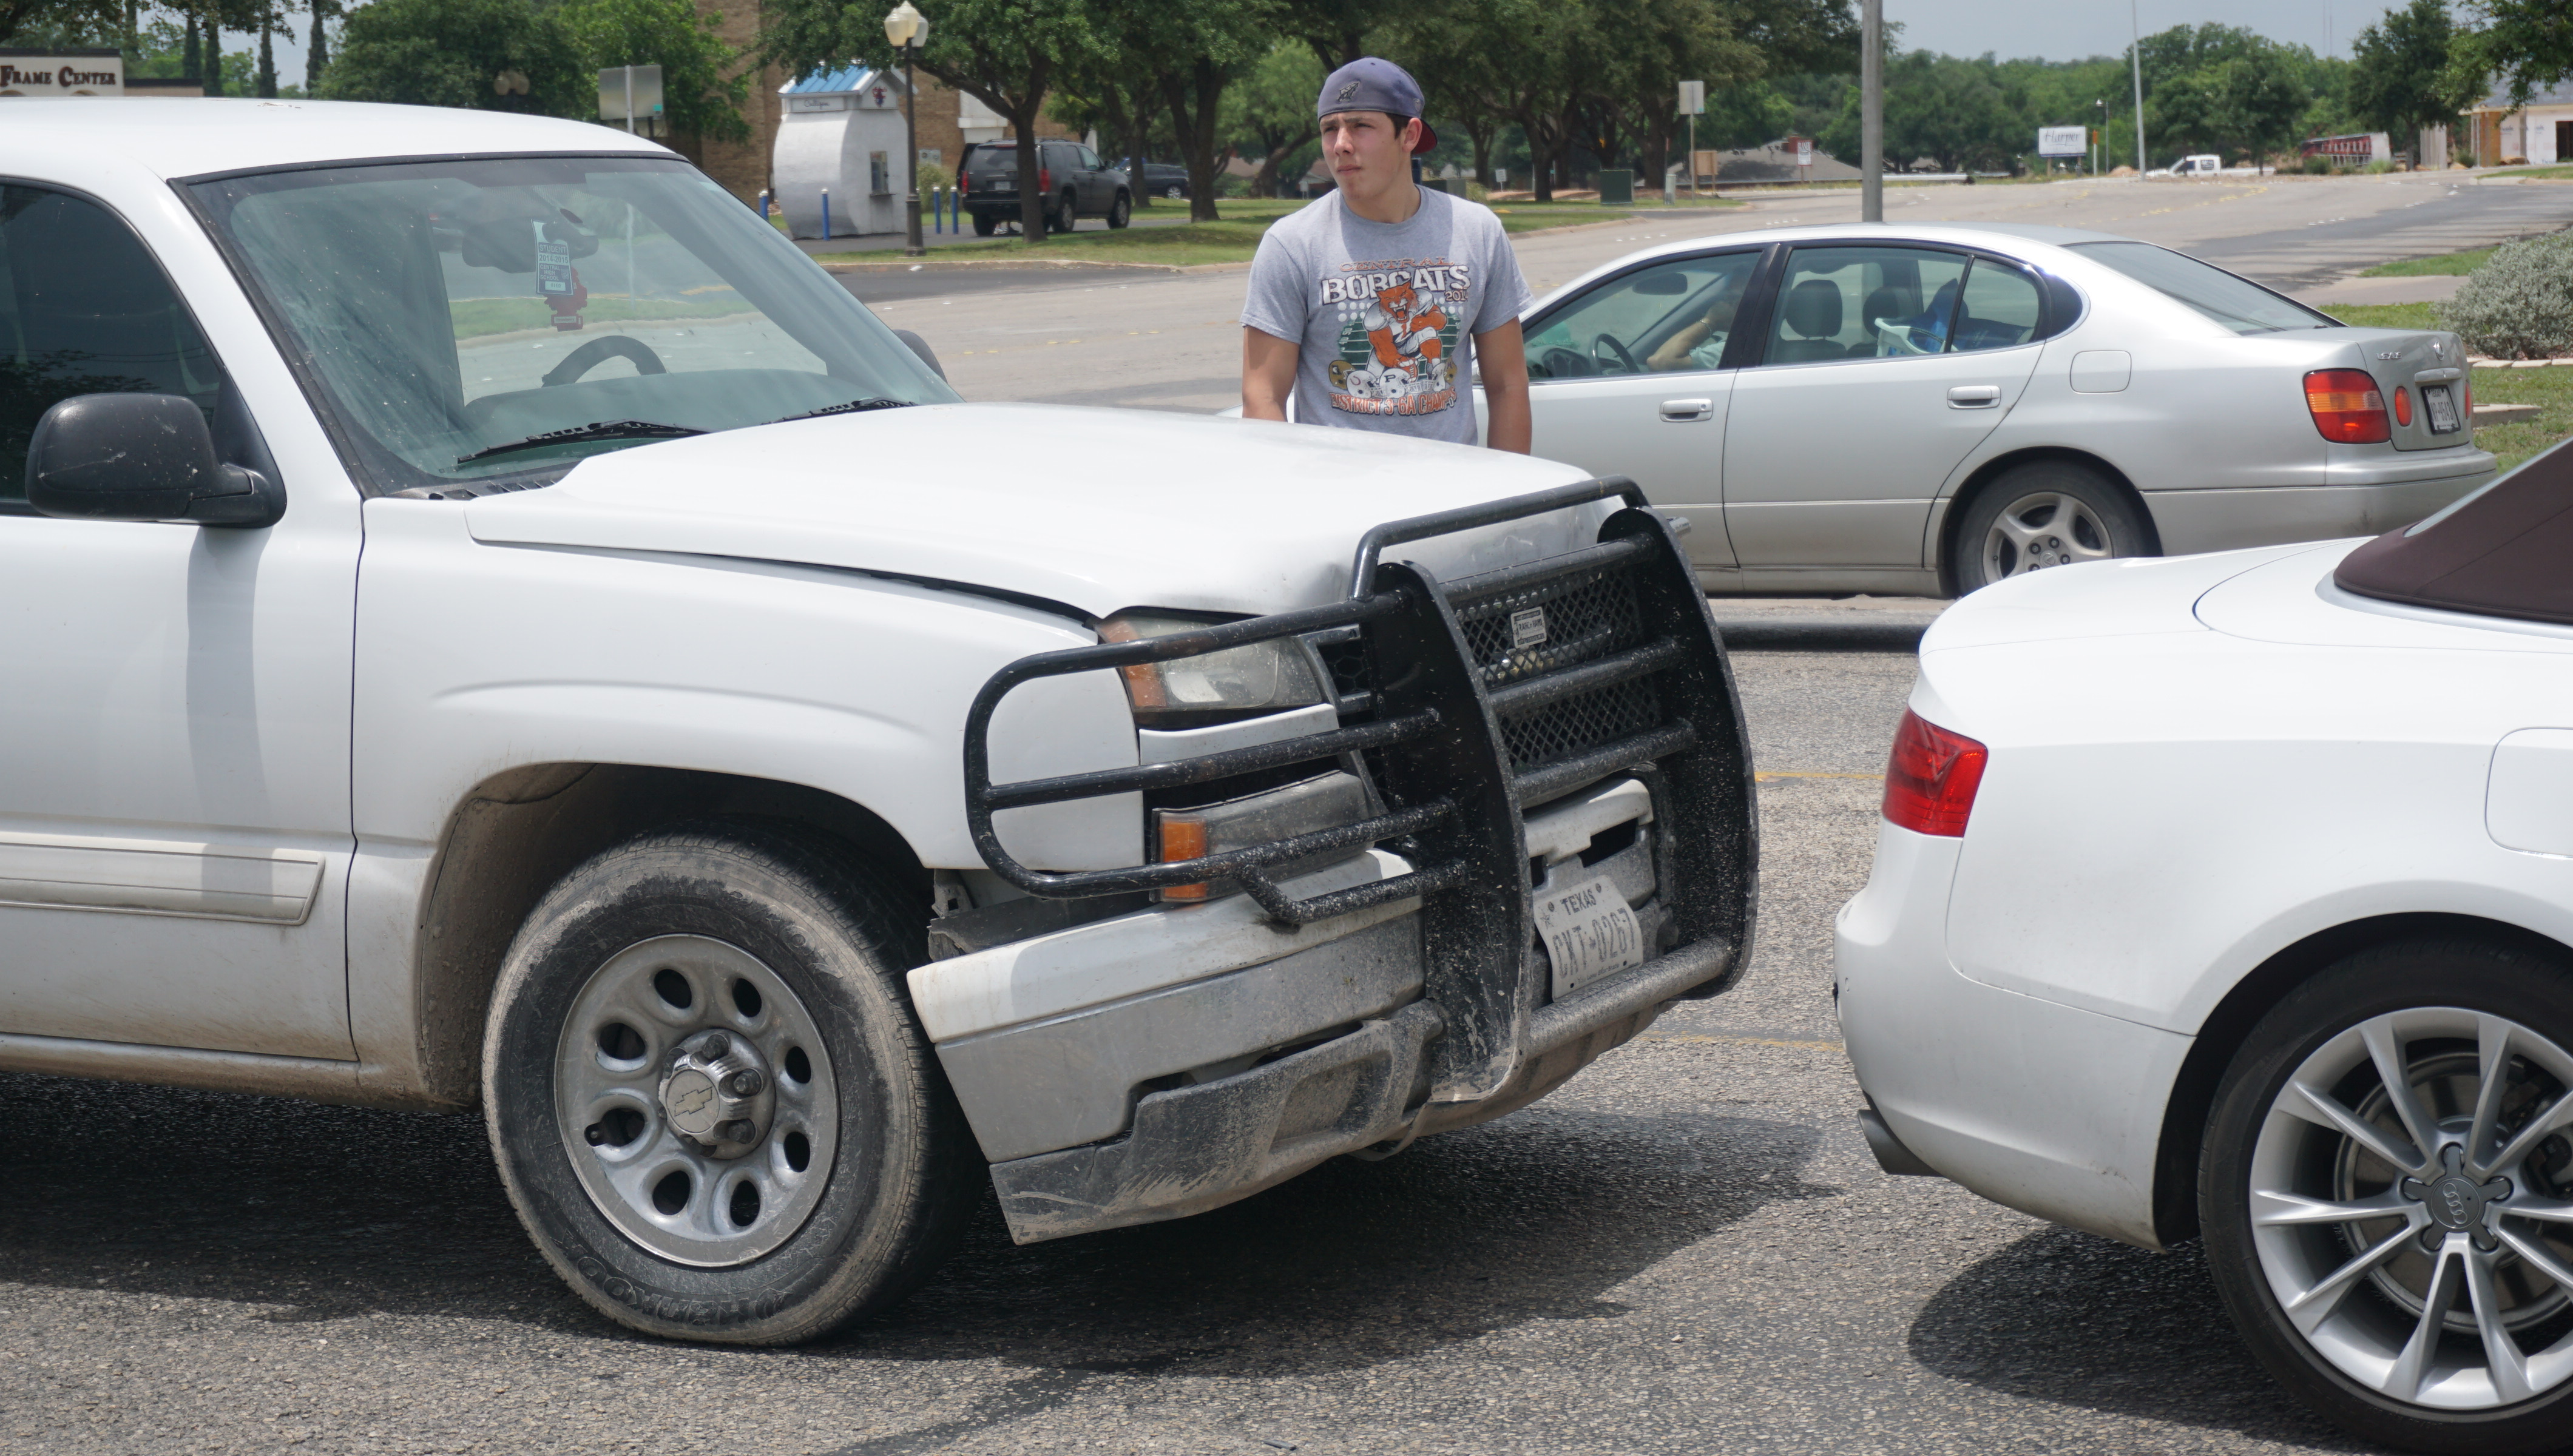 The Audi survived a rear-ending from a Chevy Silverado on Knickerboacker Rd on May 23, 2015. (LIVE! Photo/John Basquez)